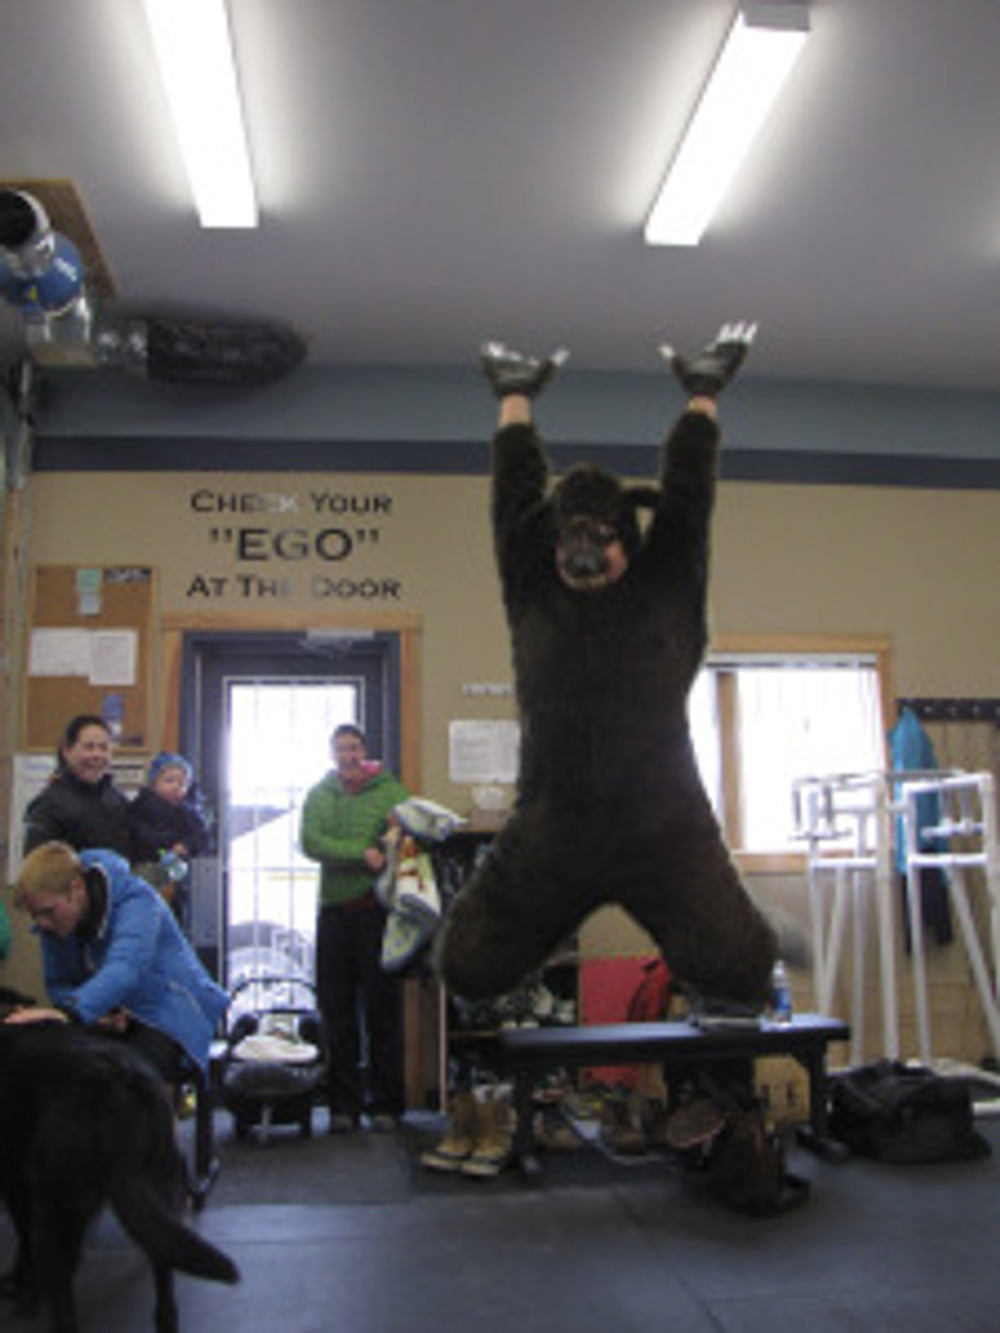 To acknowledge the businesses who contributed to the raffle and silent auction, I dressed up in a bear costume and ran around town taking pictures of Berry the Bear at that business. All pictures were shown at a slide show during the event. This is Berry at Crossfit.